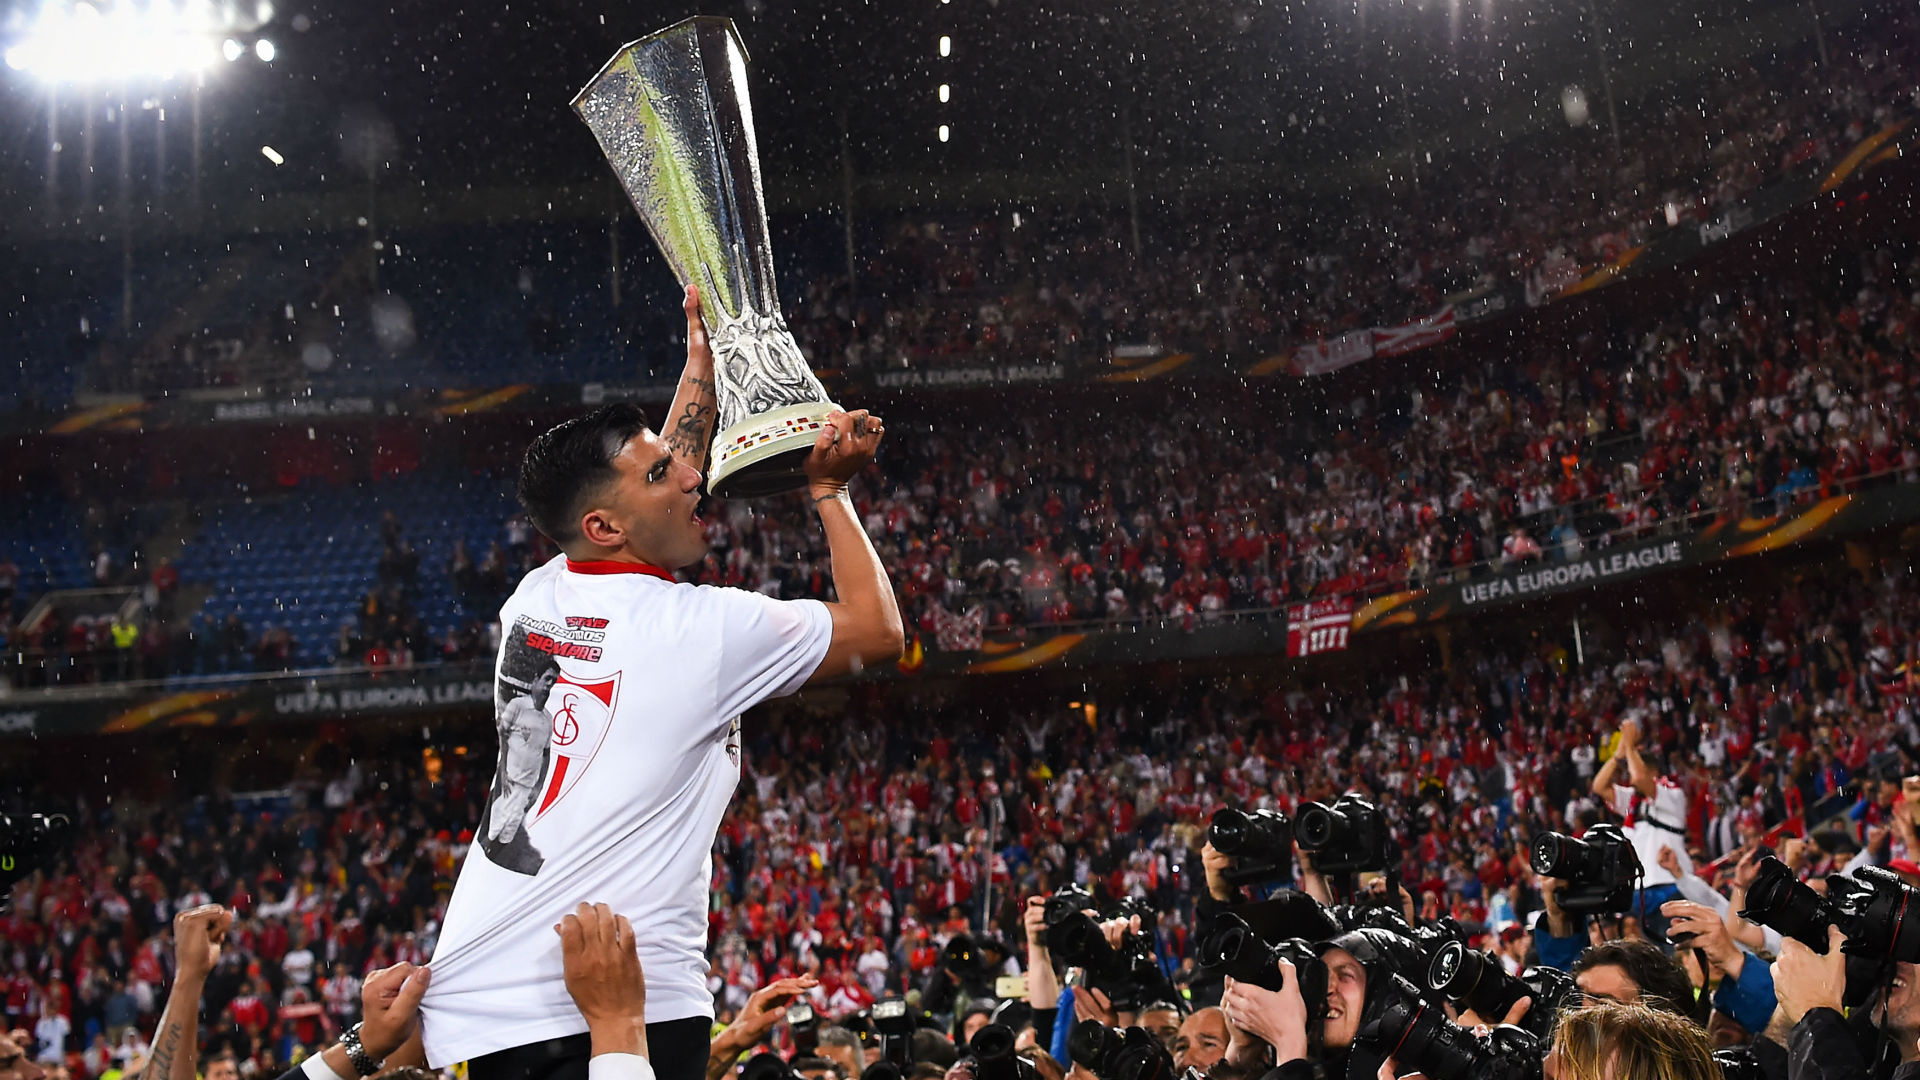 Jose Antonio Reyes leaves legacy of success borne out of Sevilla passion